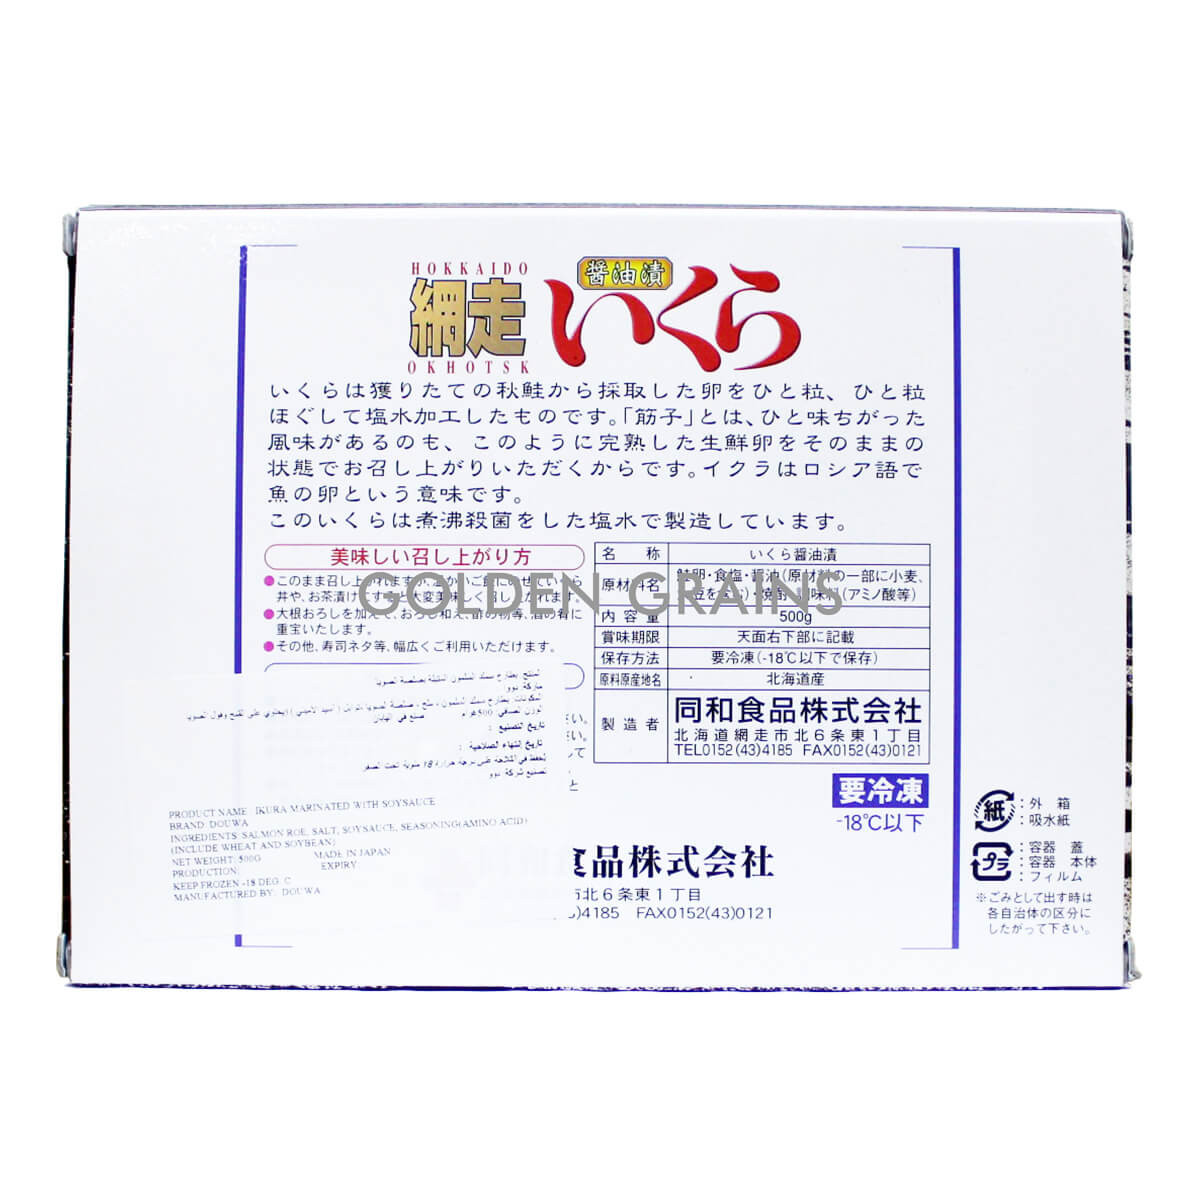 Golden Grains Douwa - Ikura with Soy sauce - Back.jpg